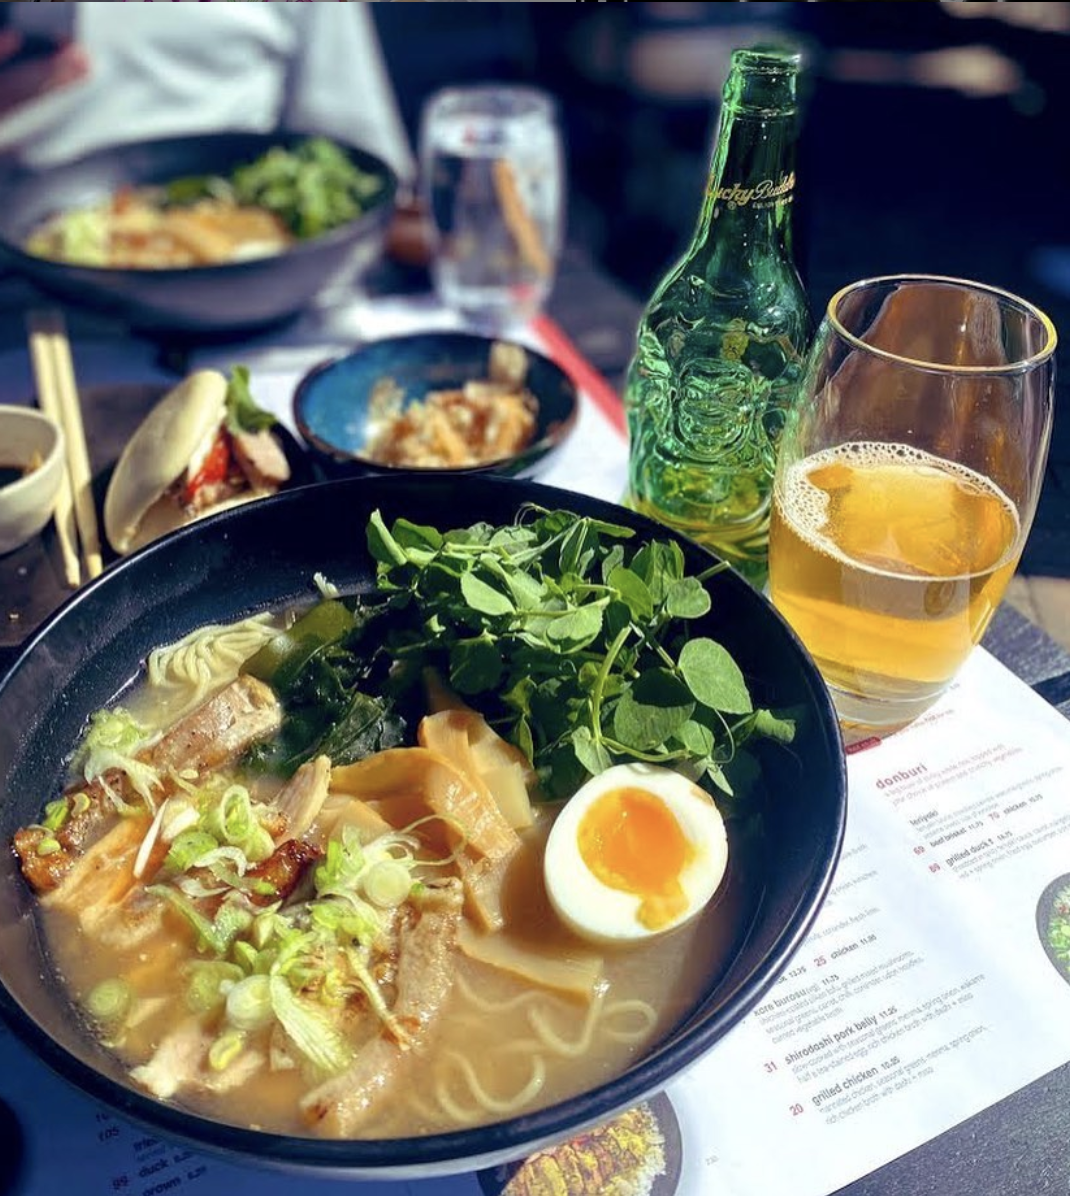 Food options from wagamama